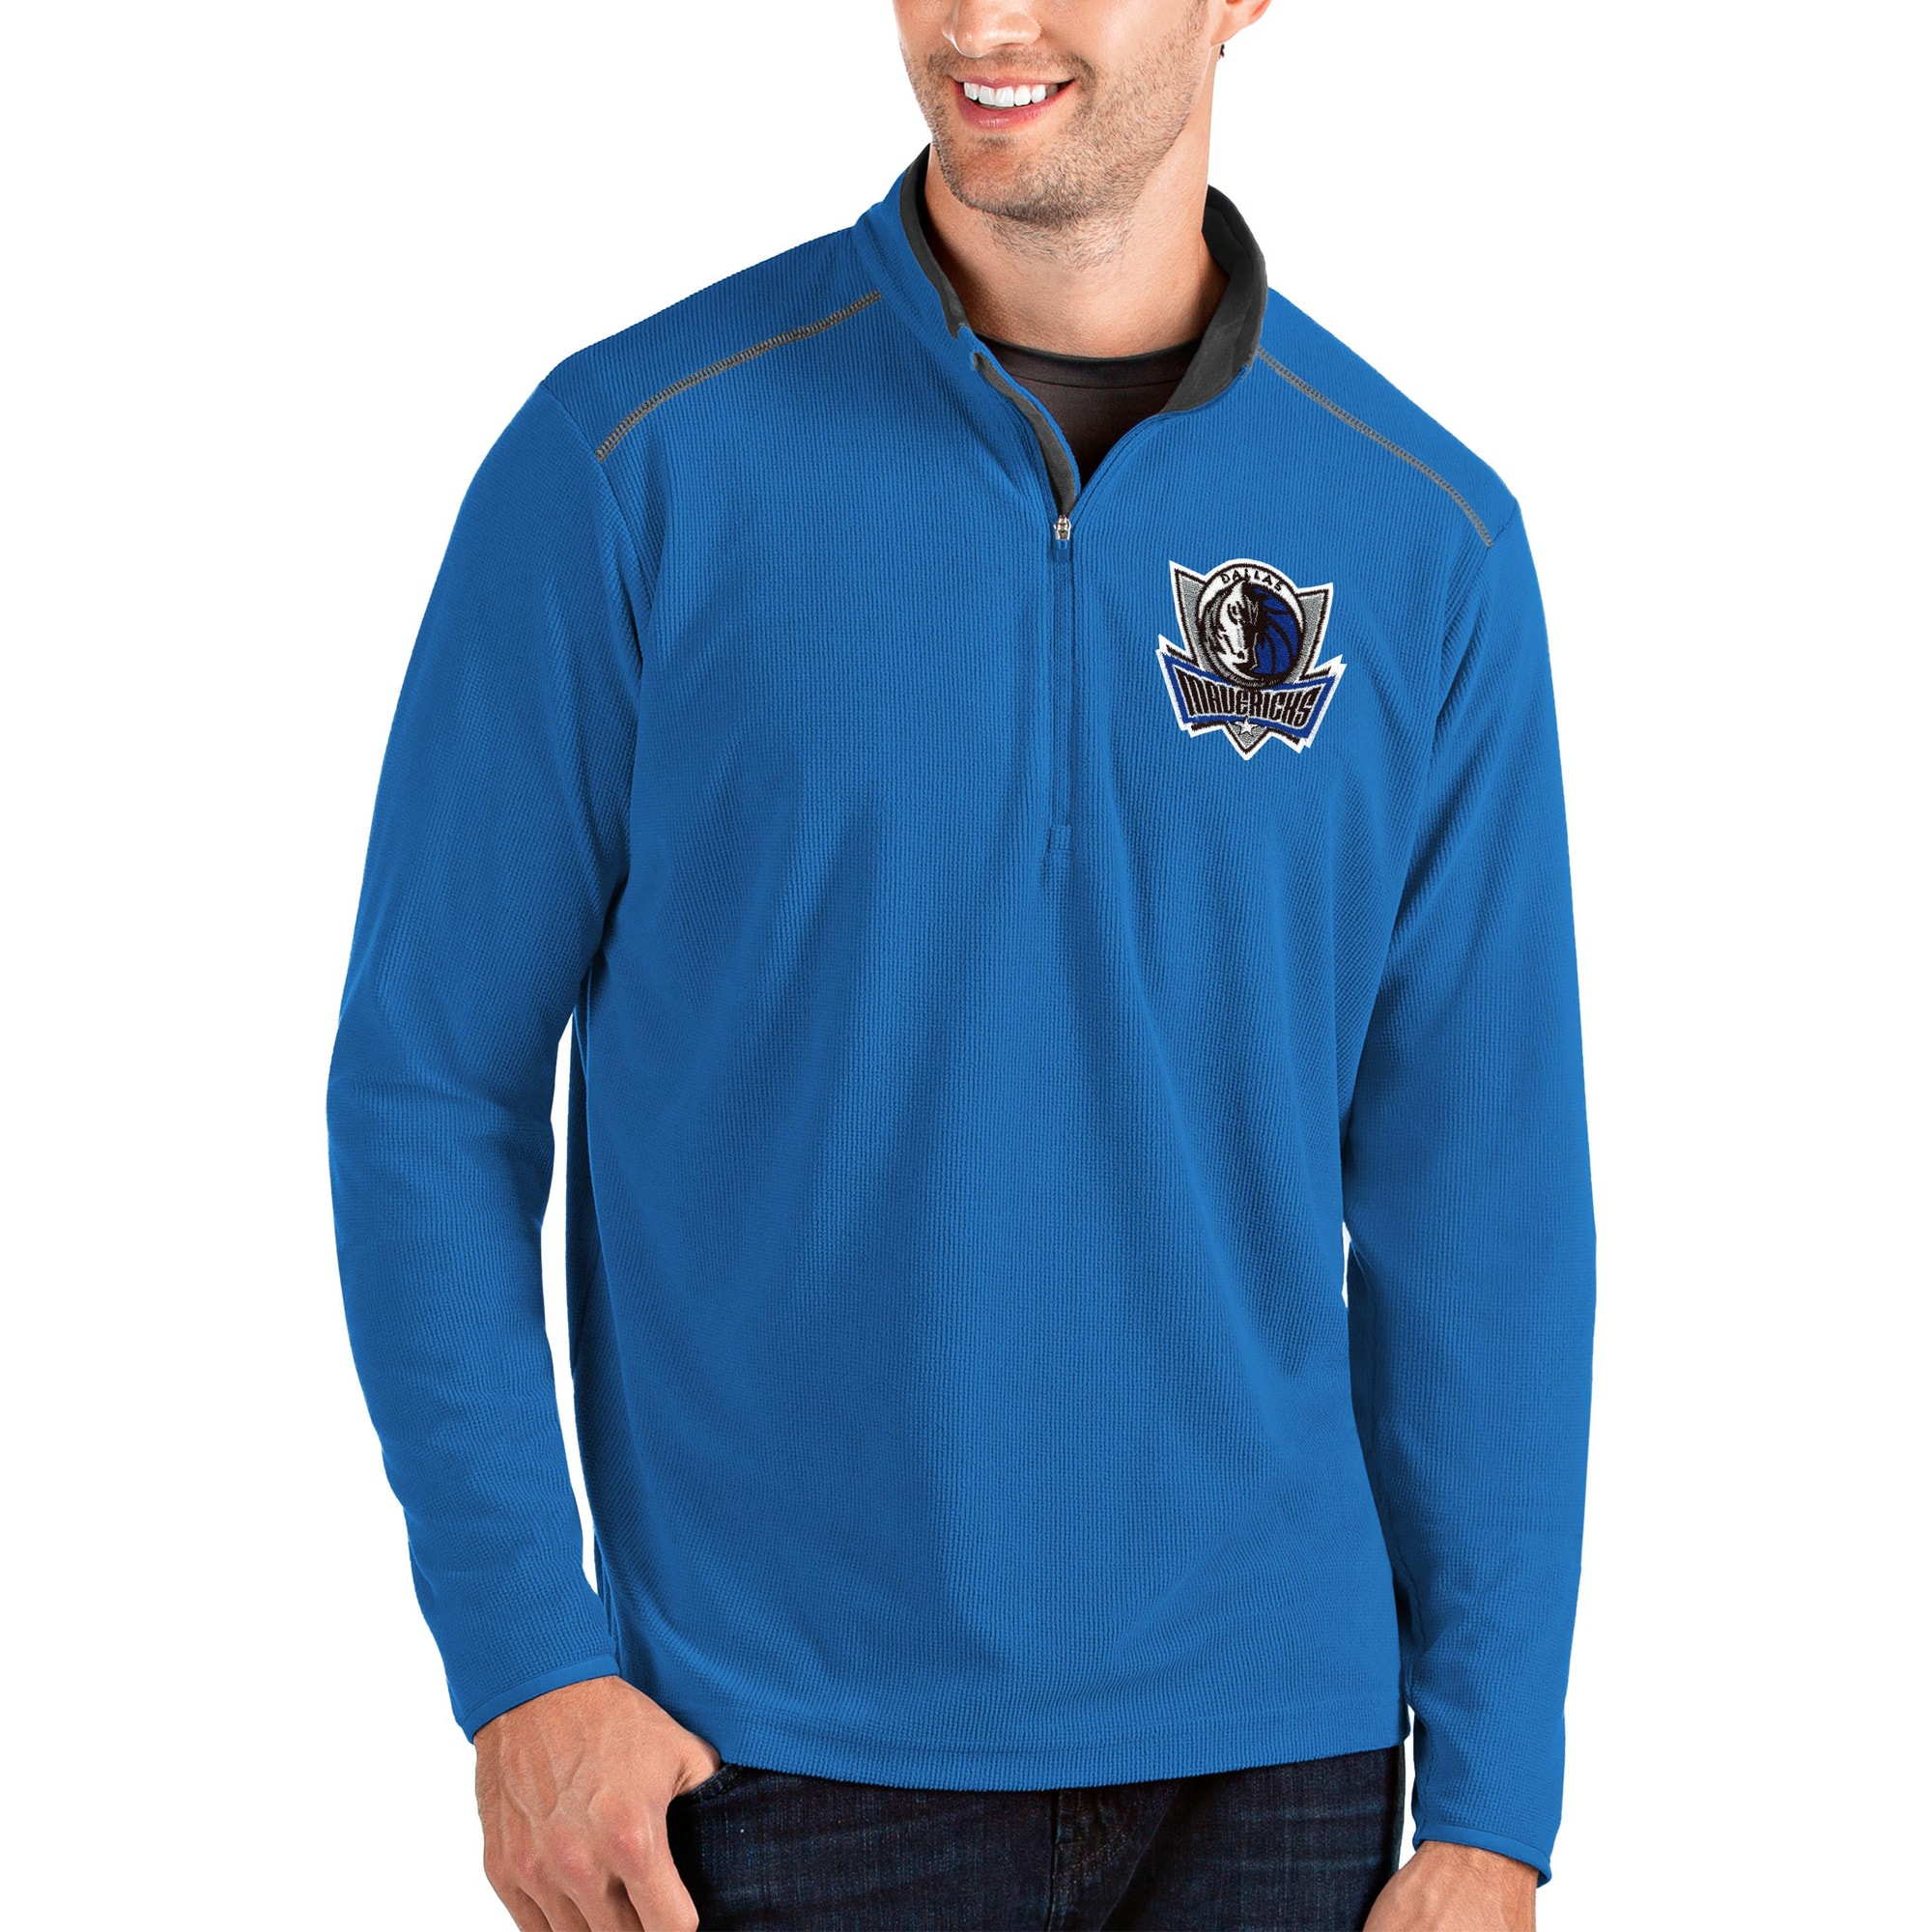 Dallas Mavericks Antigua Glacier Quarter-Zip Pullover Jacket - Blue/Gray